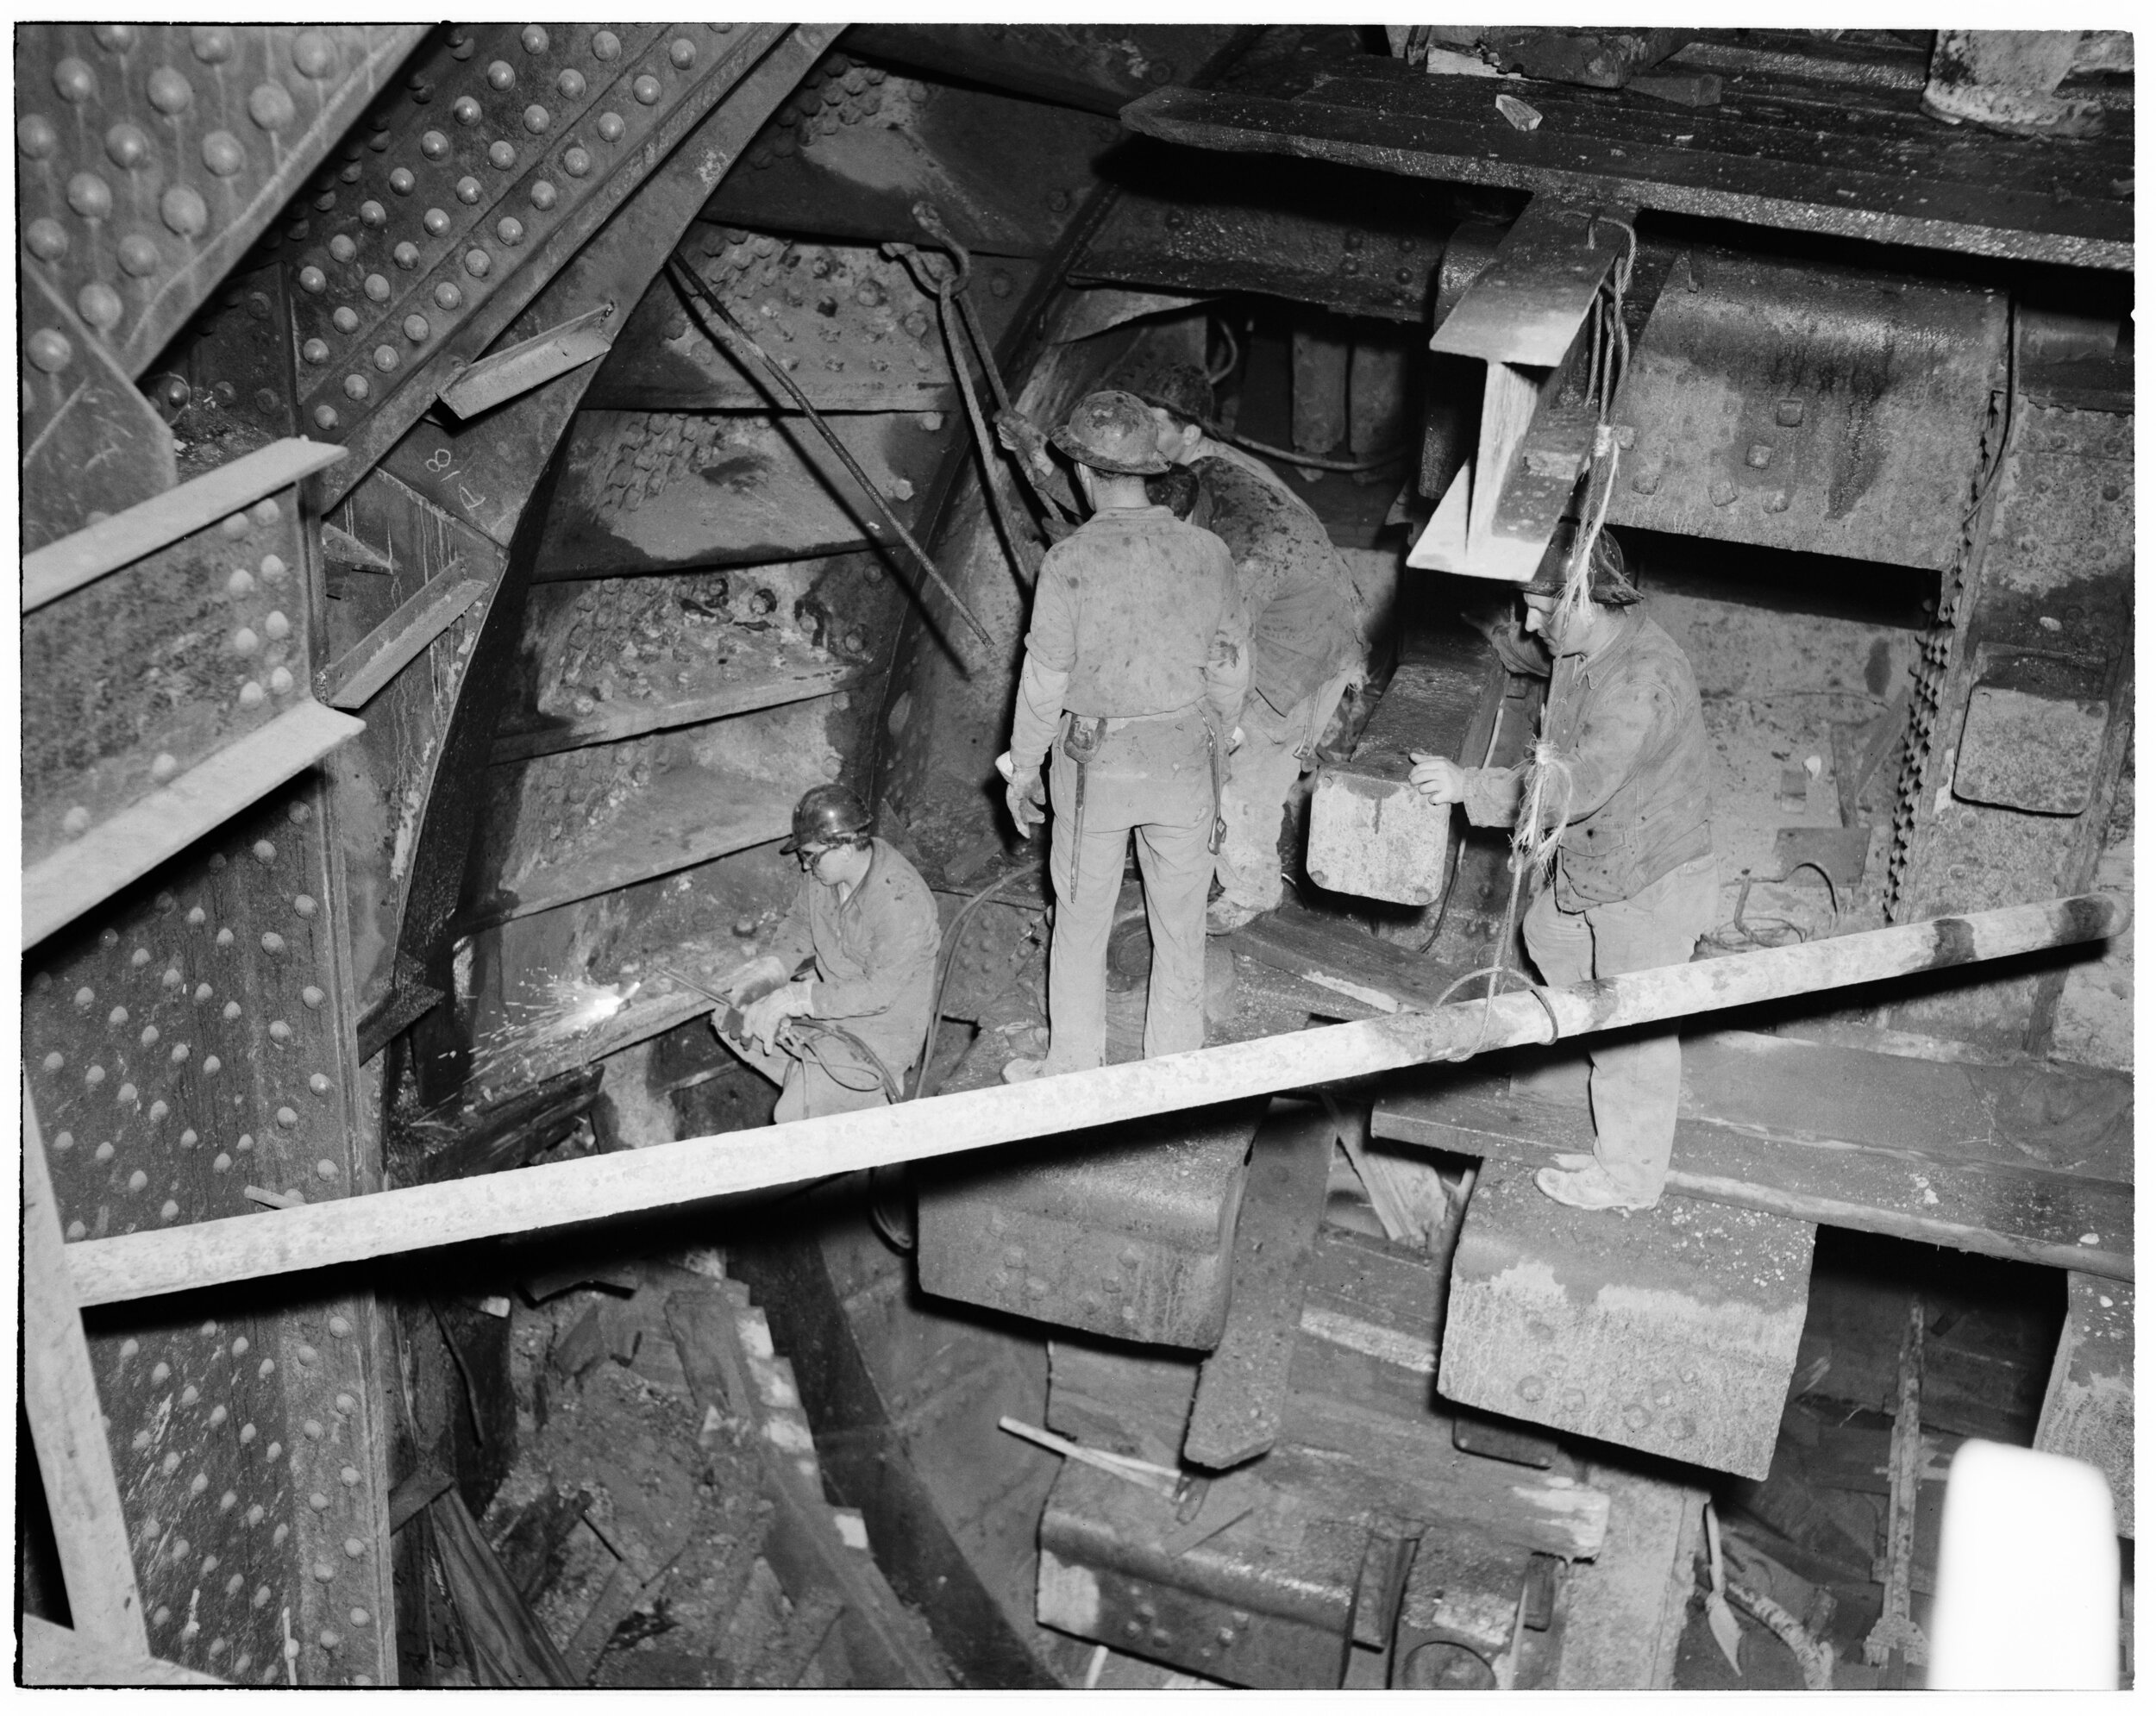 Construction of the Brooklyn Battery Tunnel; tunnel interior, October 14, 1948. Department of Parks and Recreation Collection, NYC Municipal Archives.